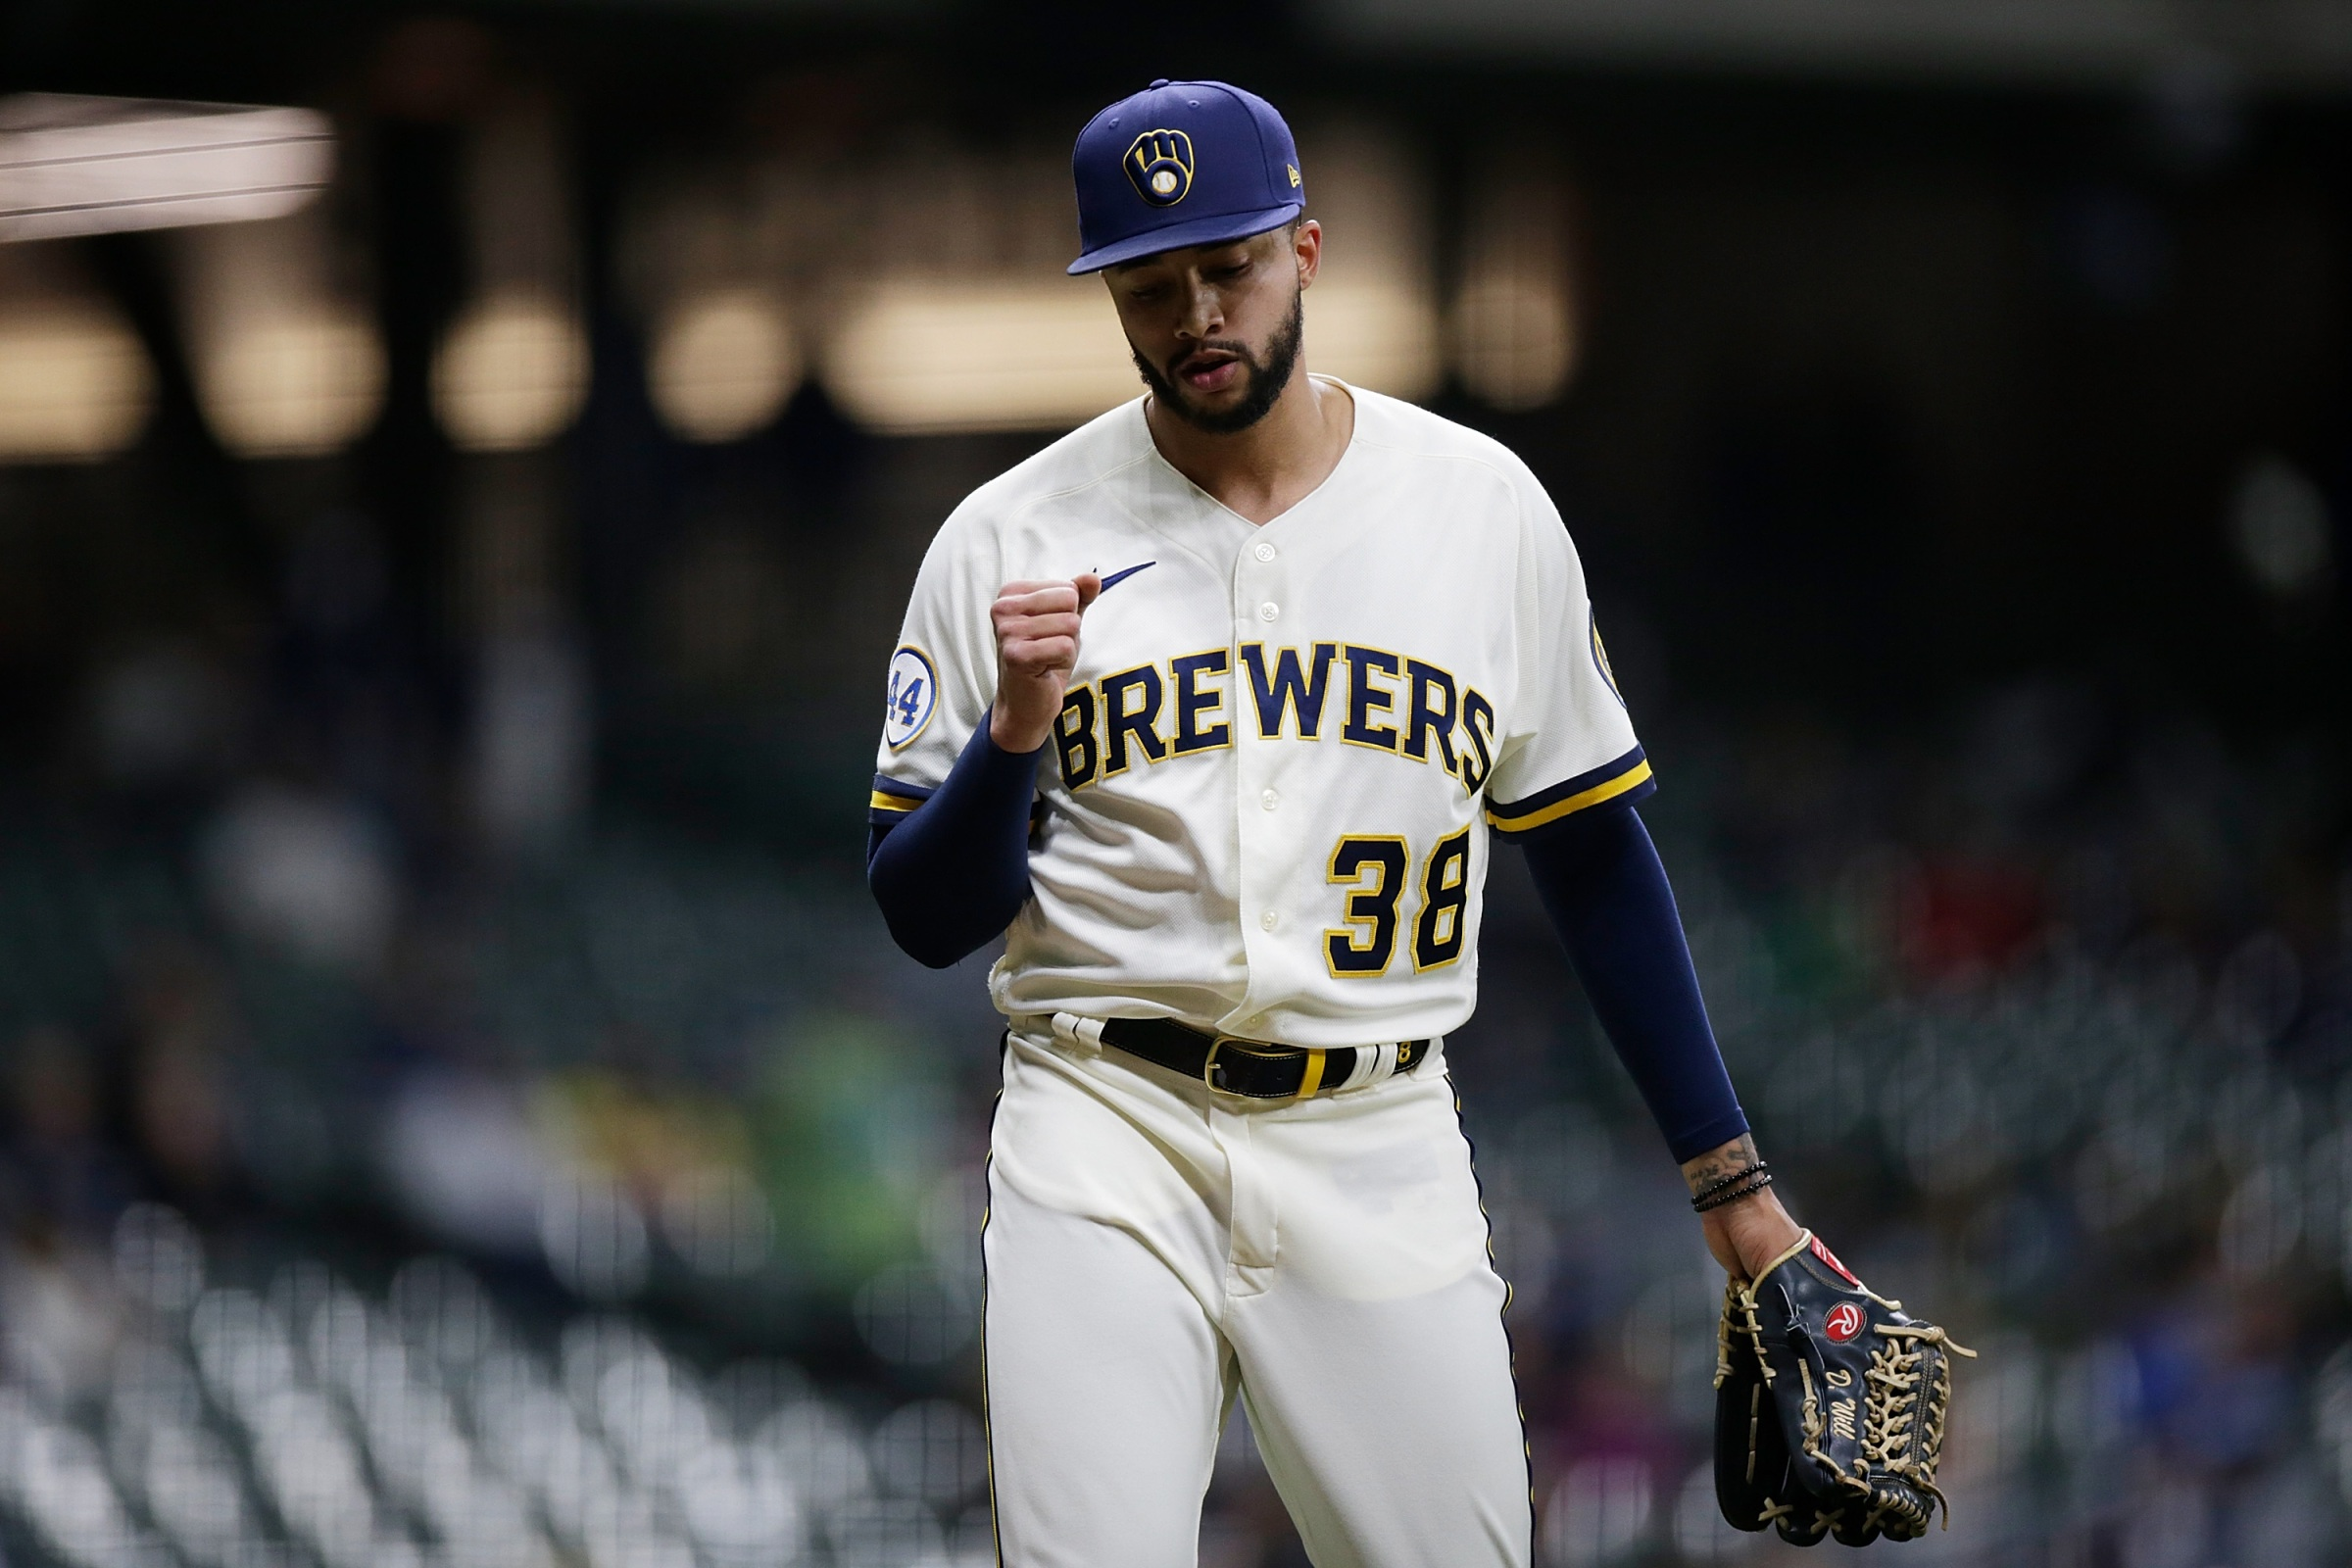 Brewers reliever Devin Williams, seen here pumping his fist after getting an out against the Marlins in April.